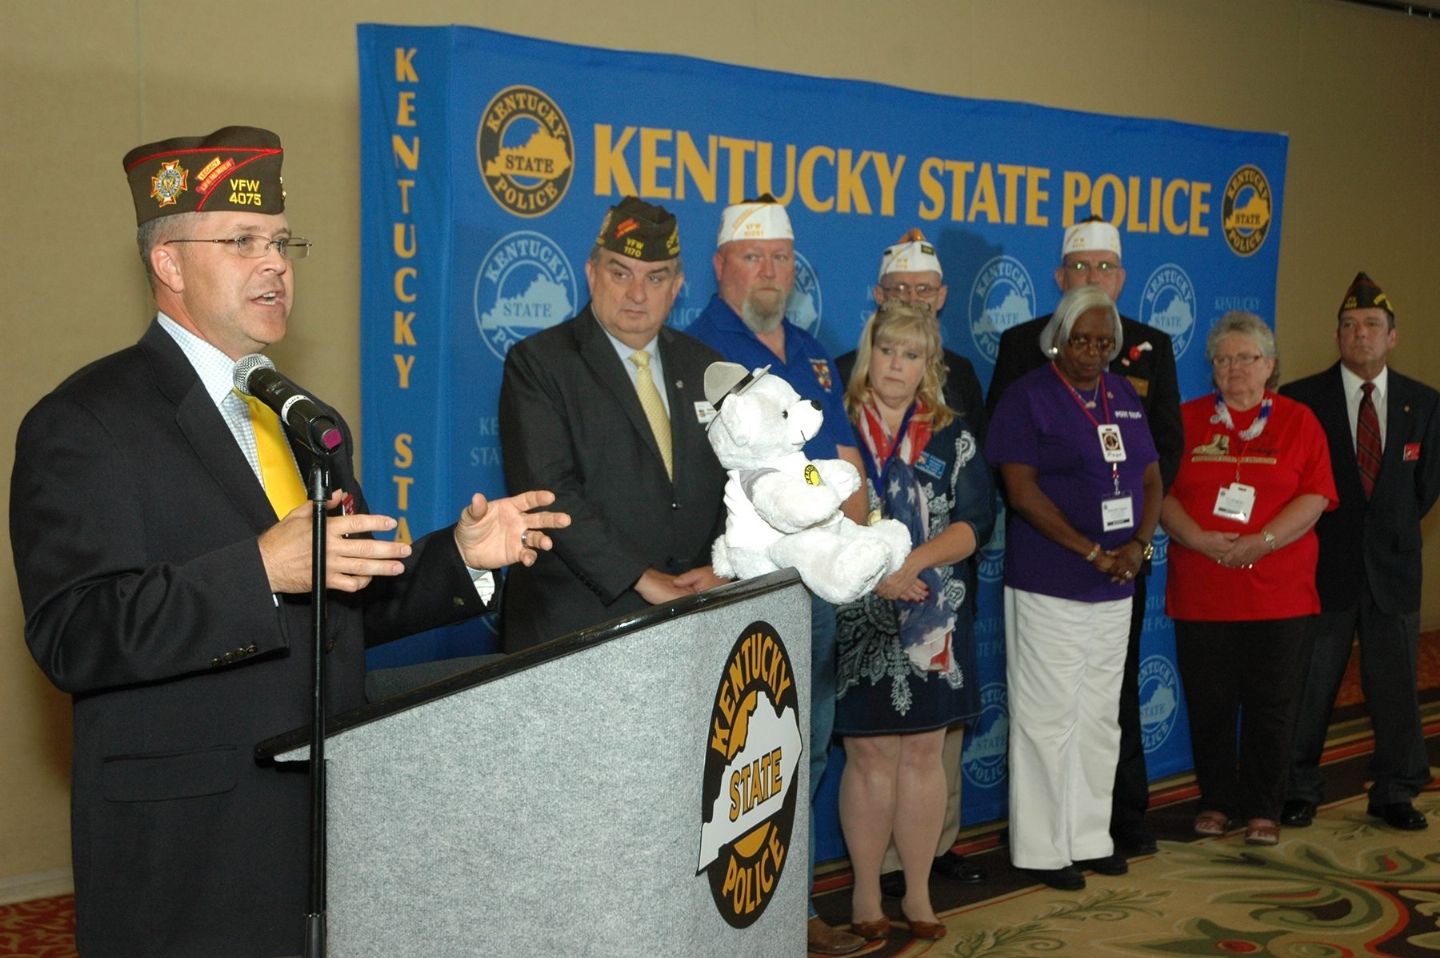 State Surgeon Richard Quire explaining how the Kentucky Department was able to donate $8,000 to the Kentucky State Police's Trooper Teddy Program by requesting VFW Community Service Grants.